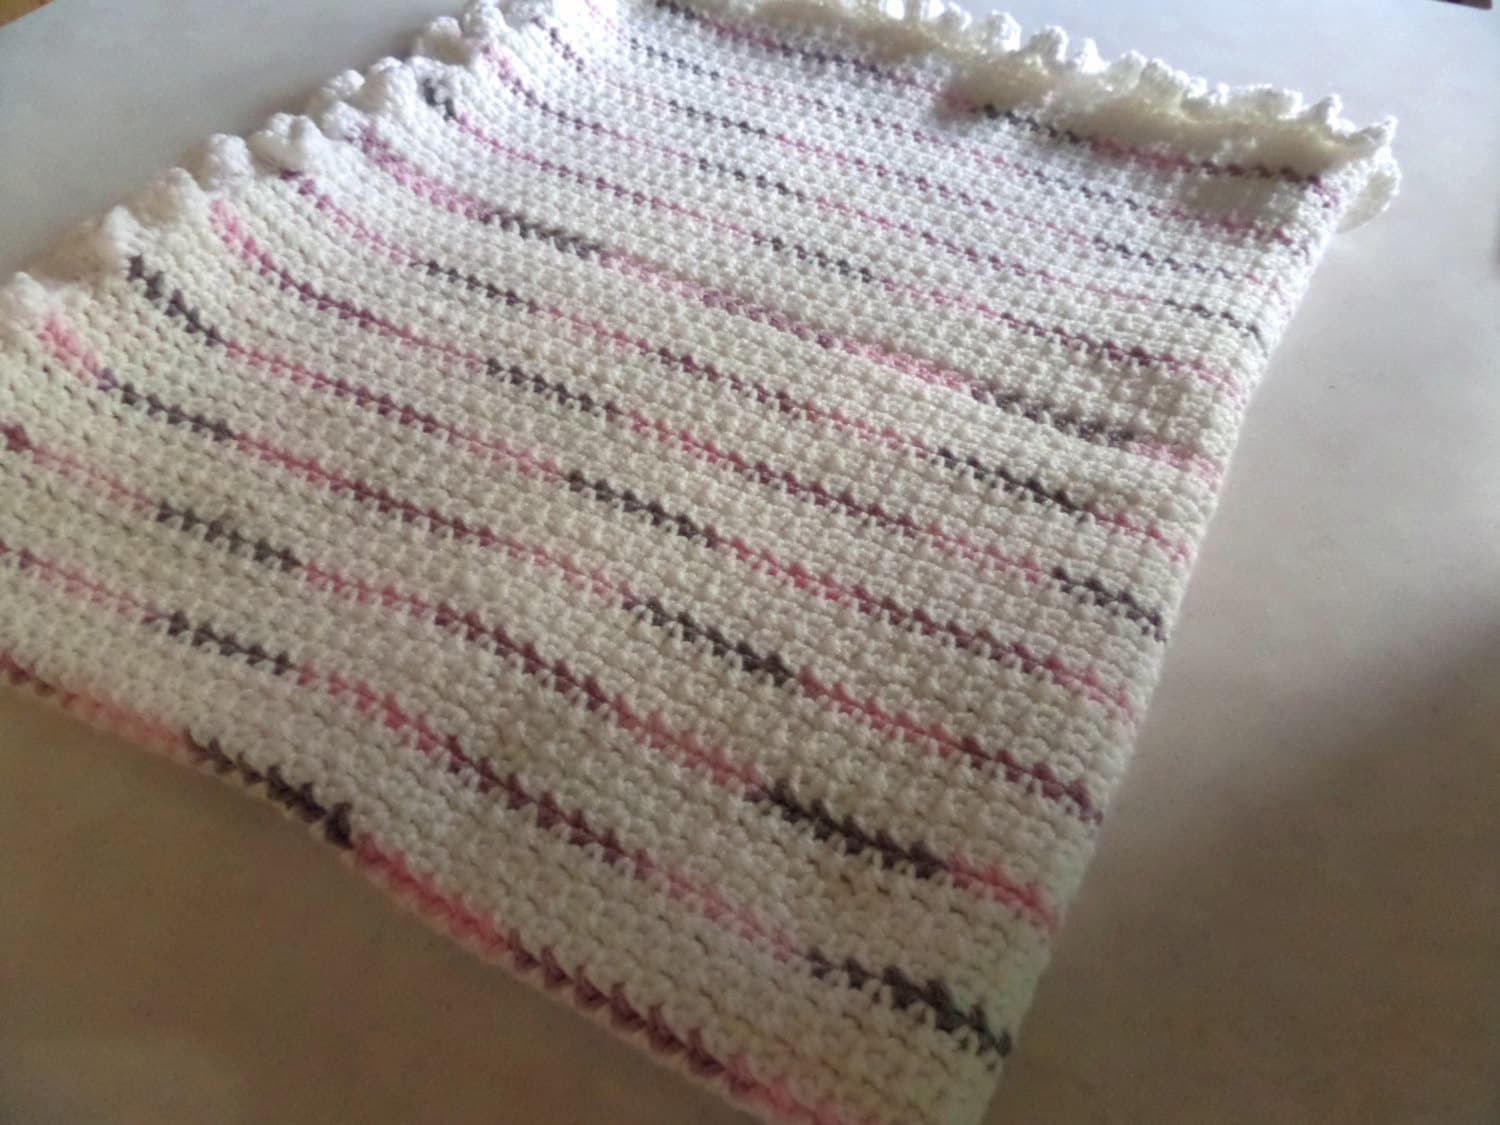 Crochet Lap Blanket Colorful Striped White And Pink Throw